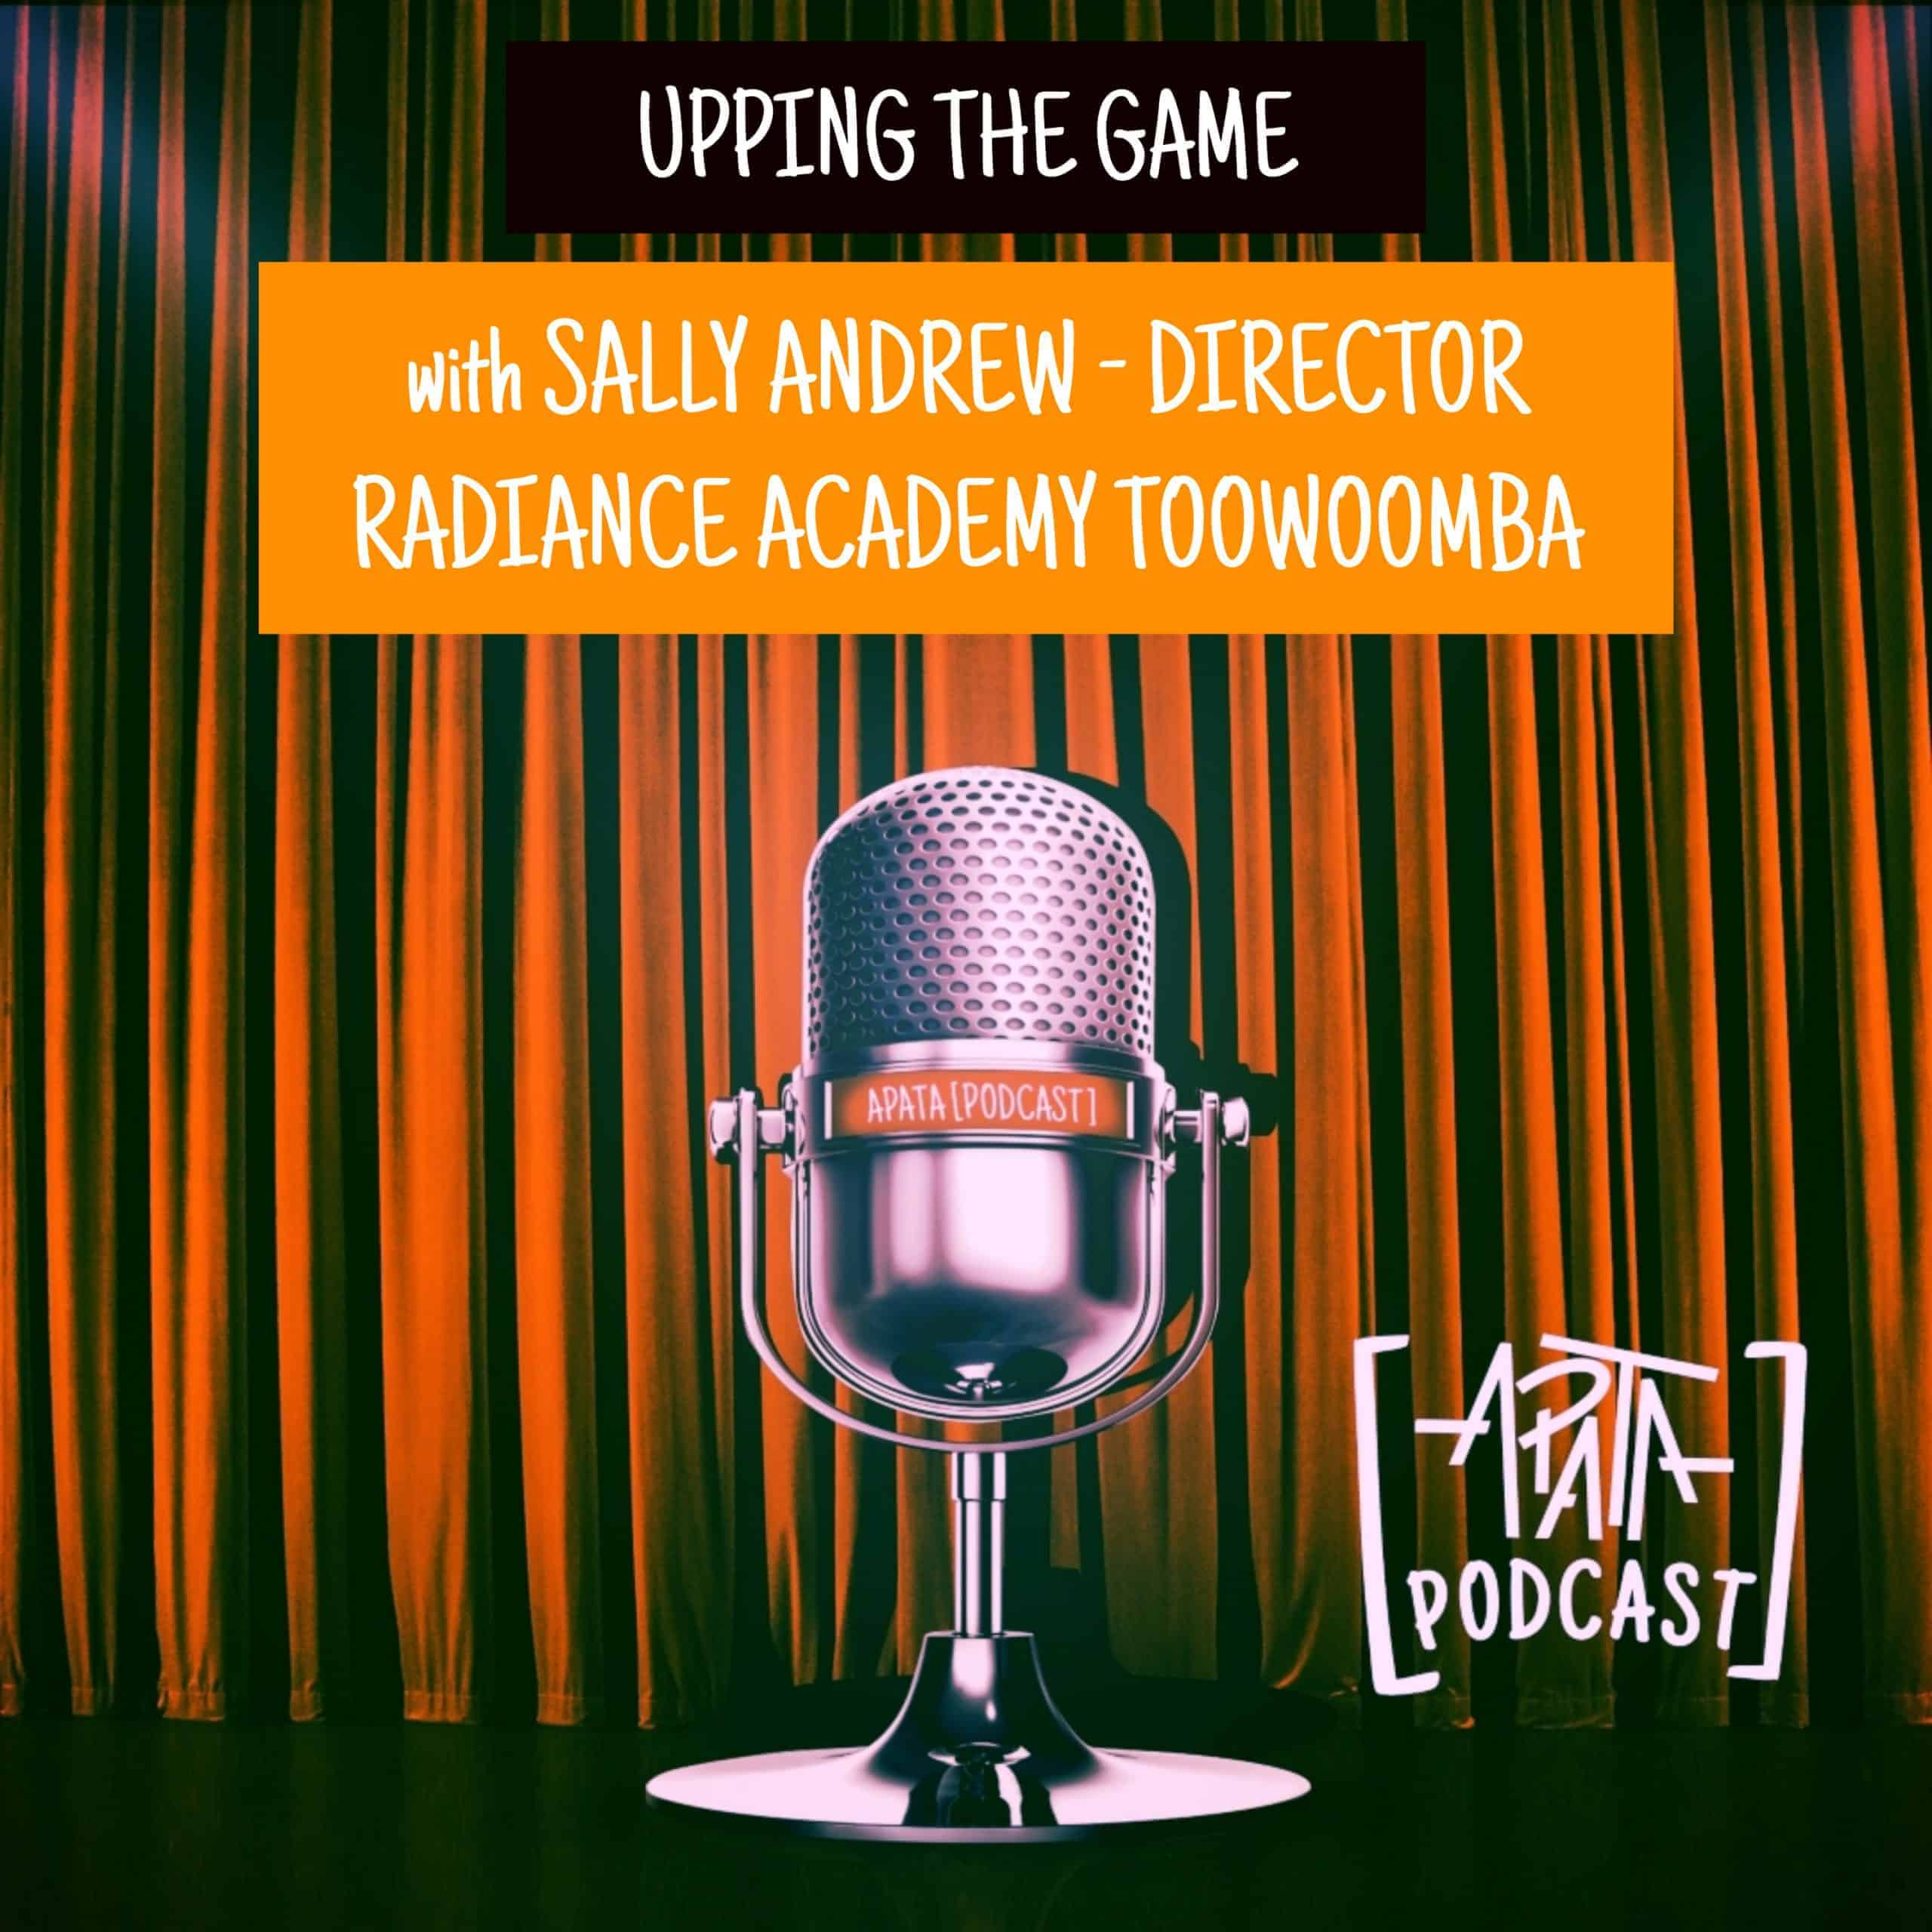 Upping the Game - with Sally Andrew